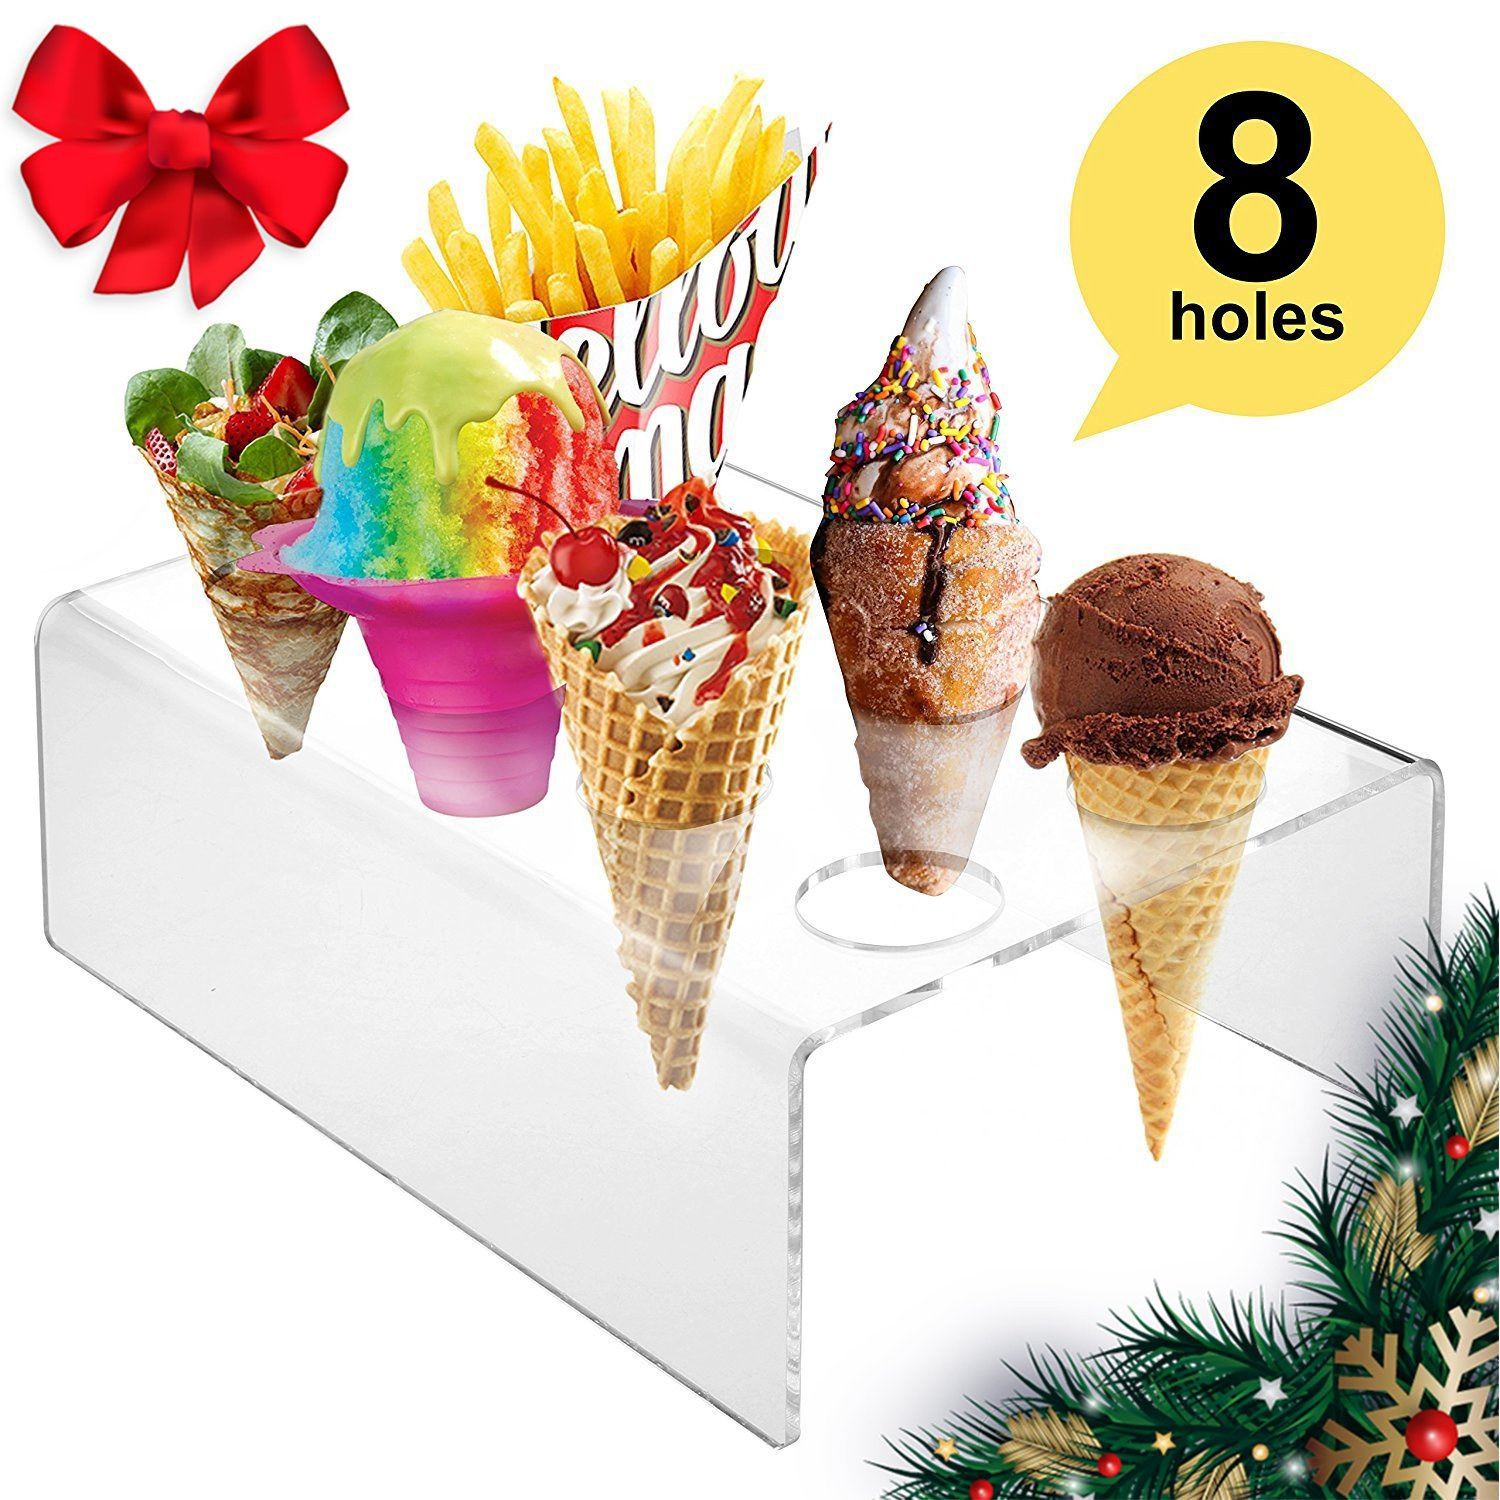 8 Holes Acrylic Mini Ice Cream Waffle Cones Stand Rack for Cute Desserts Display, Ice Cream, Snow Cone, Popcorn, Candy, French Fries, Sweets, Savory - Ice Cream Recipe eBook Included